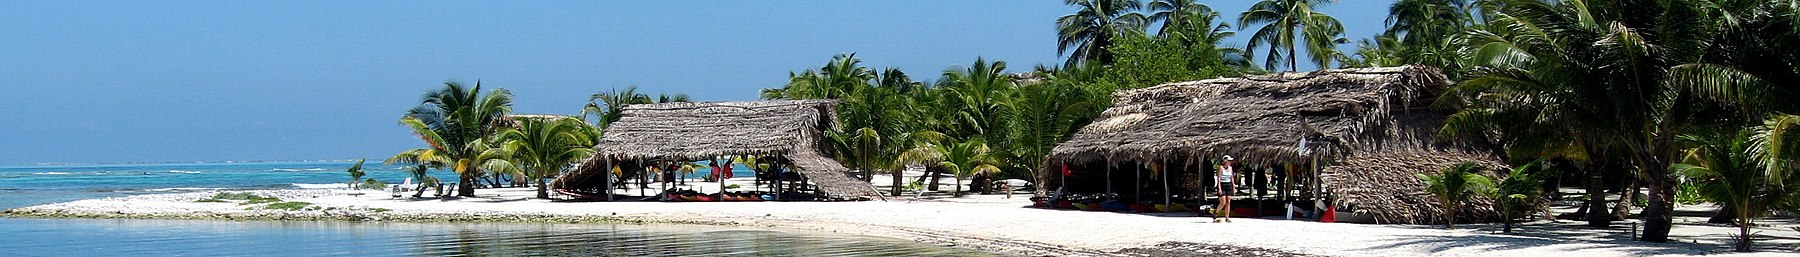 Caye with beach huts and palm trees.